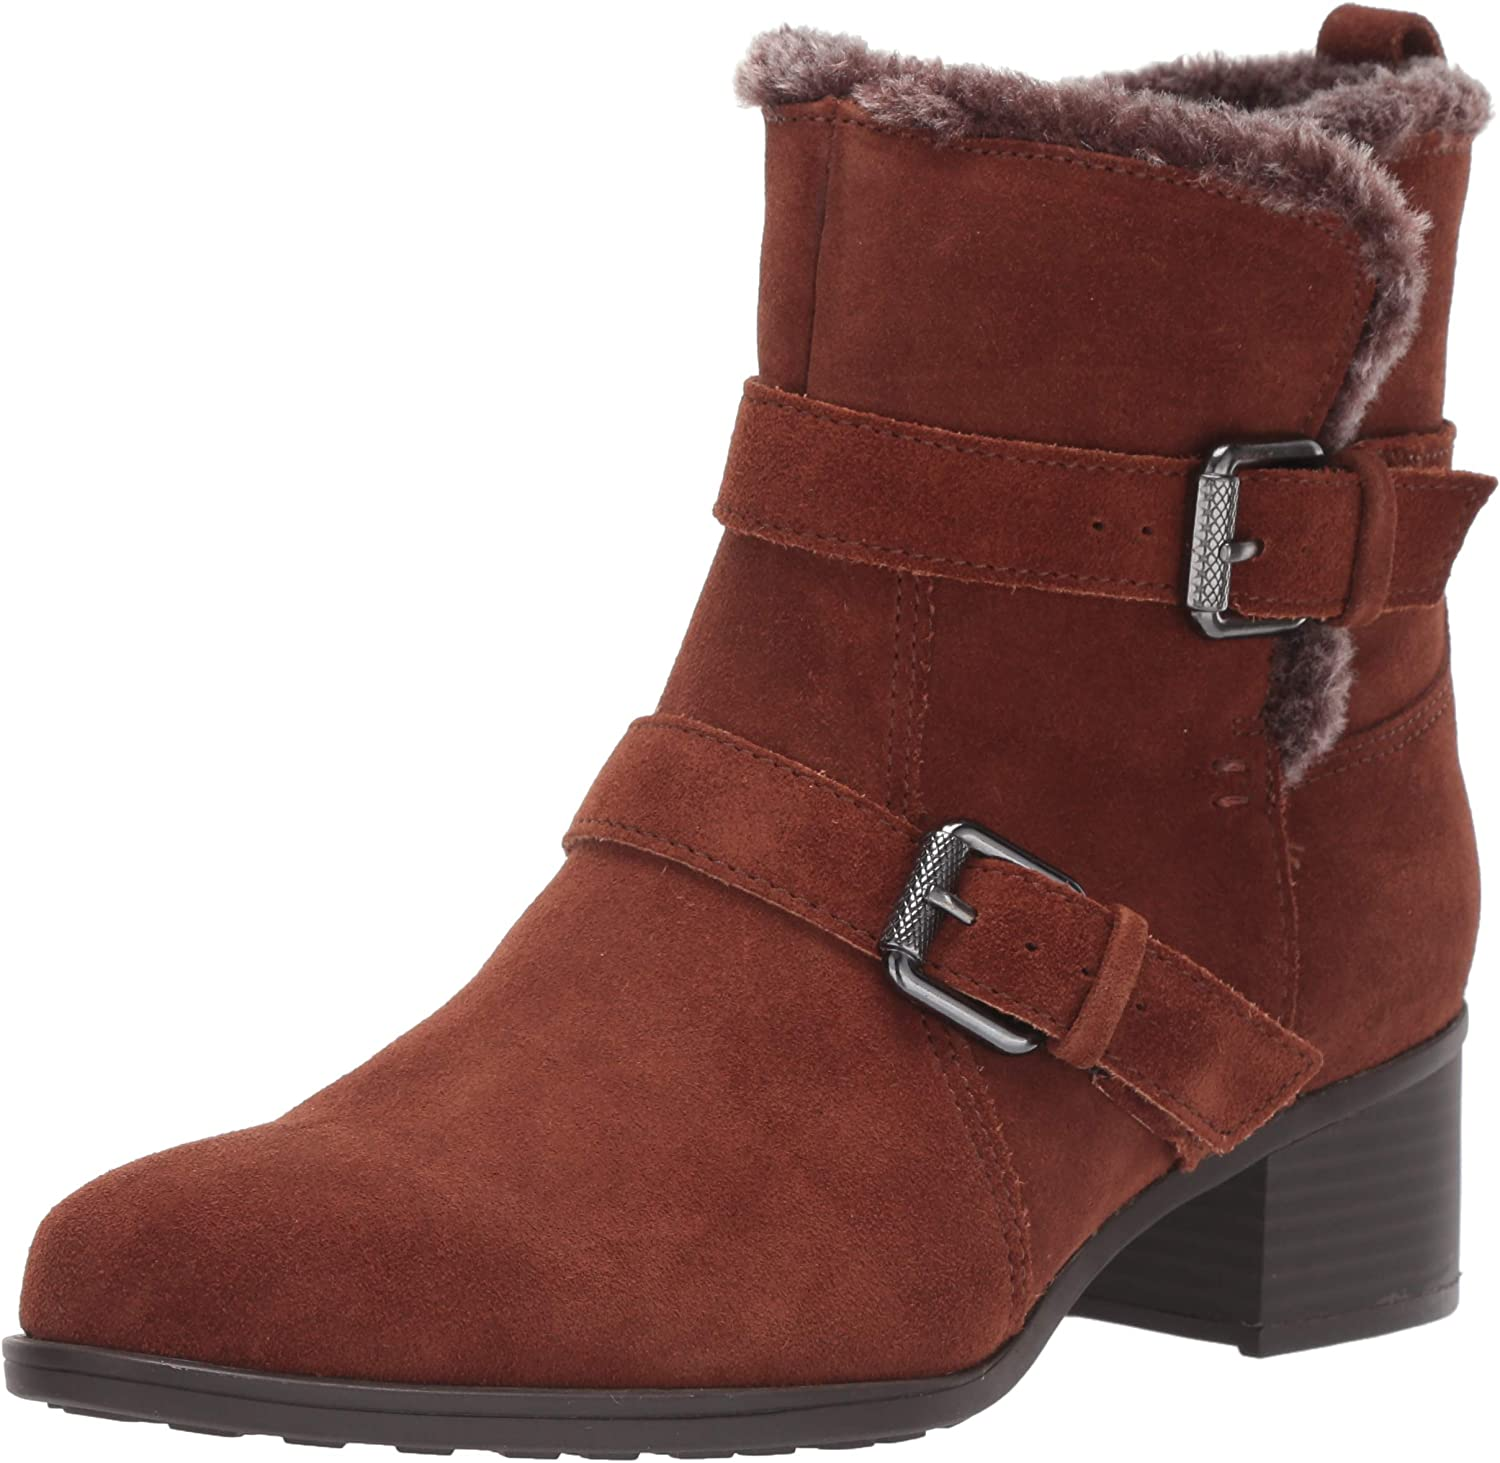 Naturalizer Women's Deanne Booties Ankle Boot